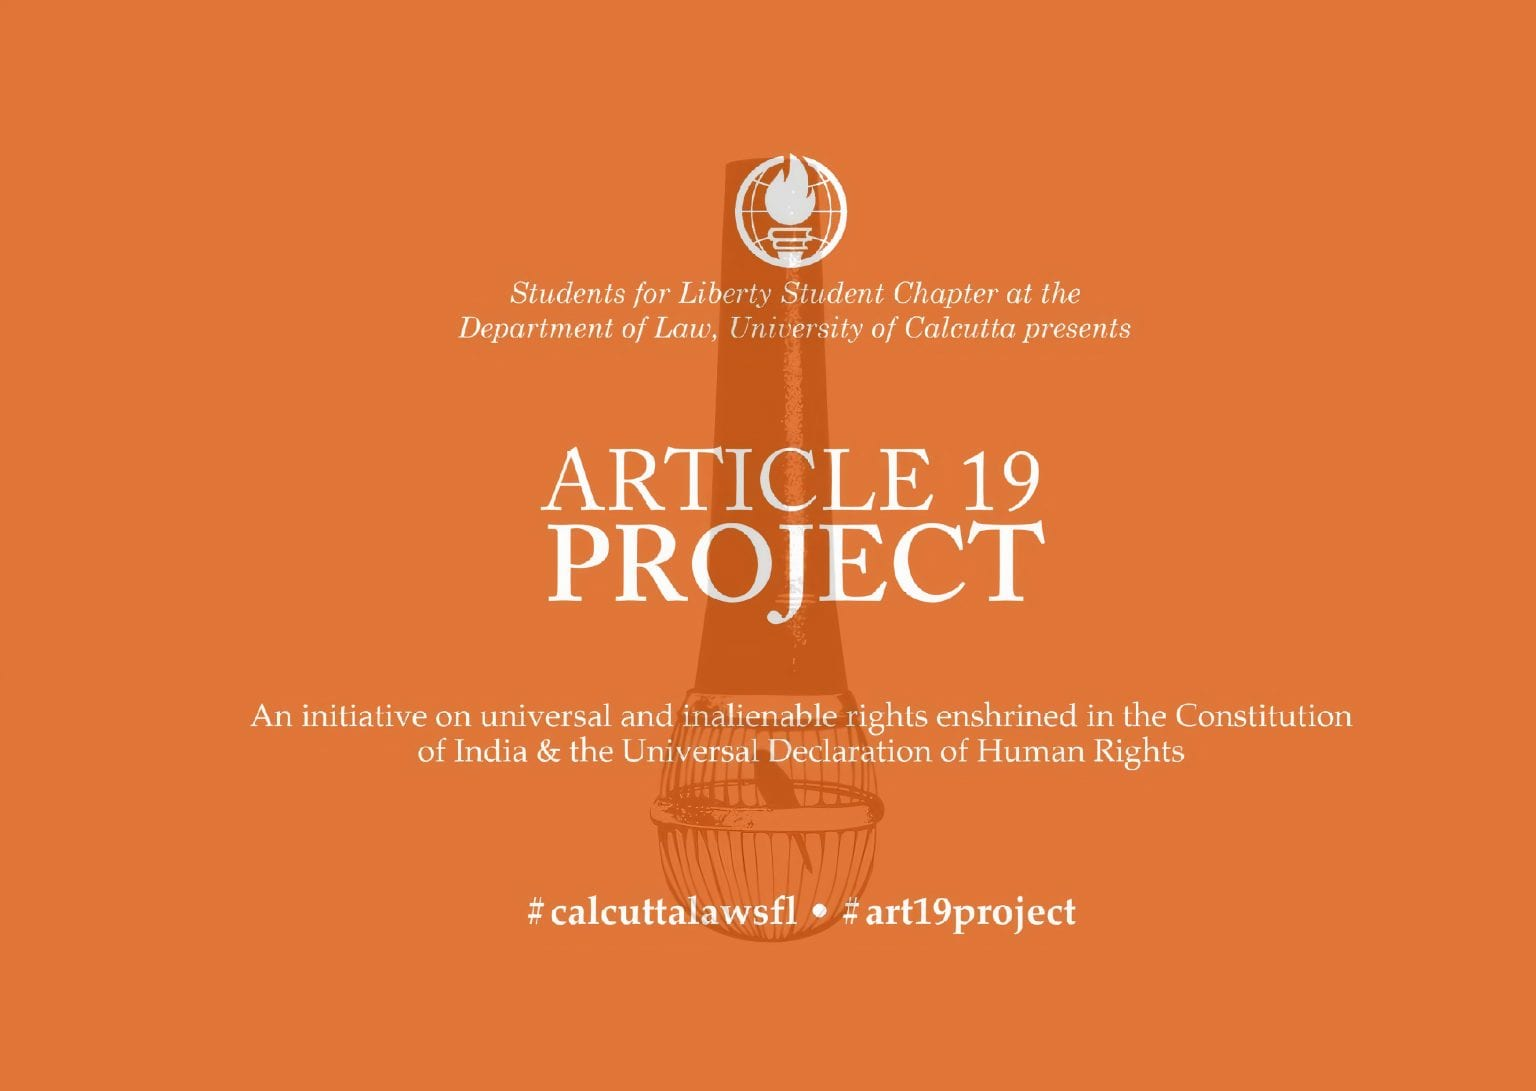 Call for Blogs: The Article 19 Project by SLS, Department of Law, University of Calcutta: Rolling Submissions